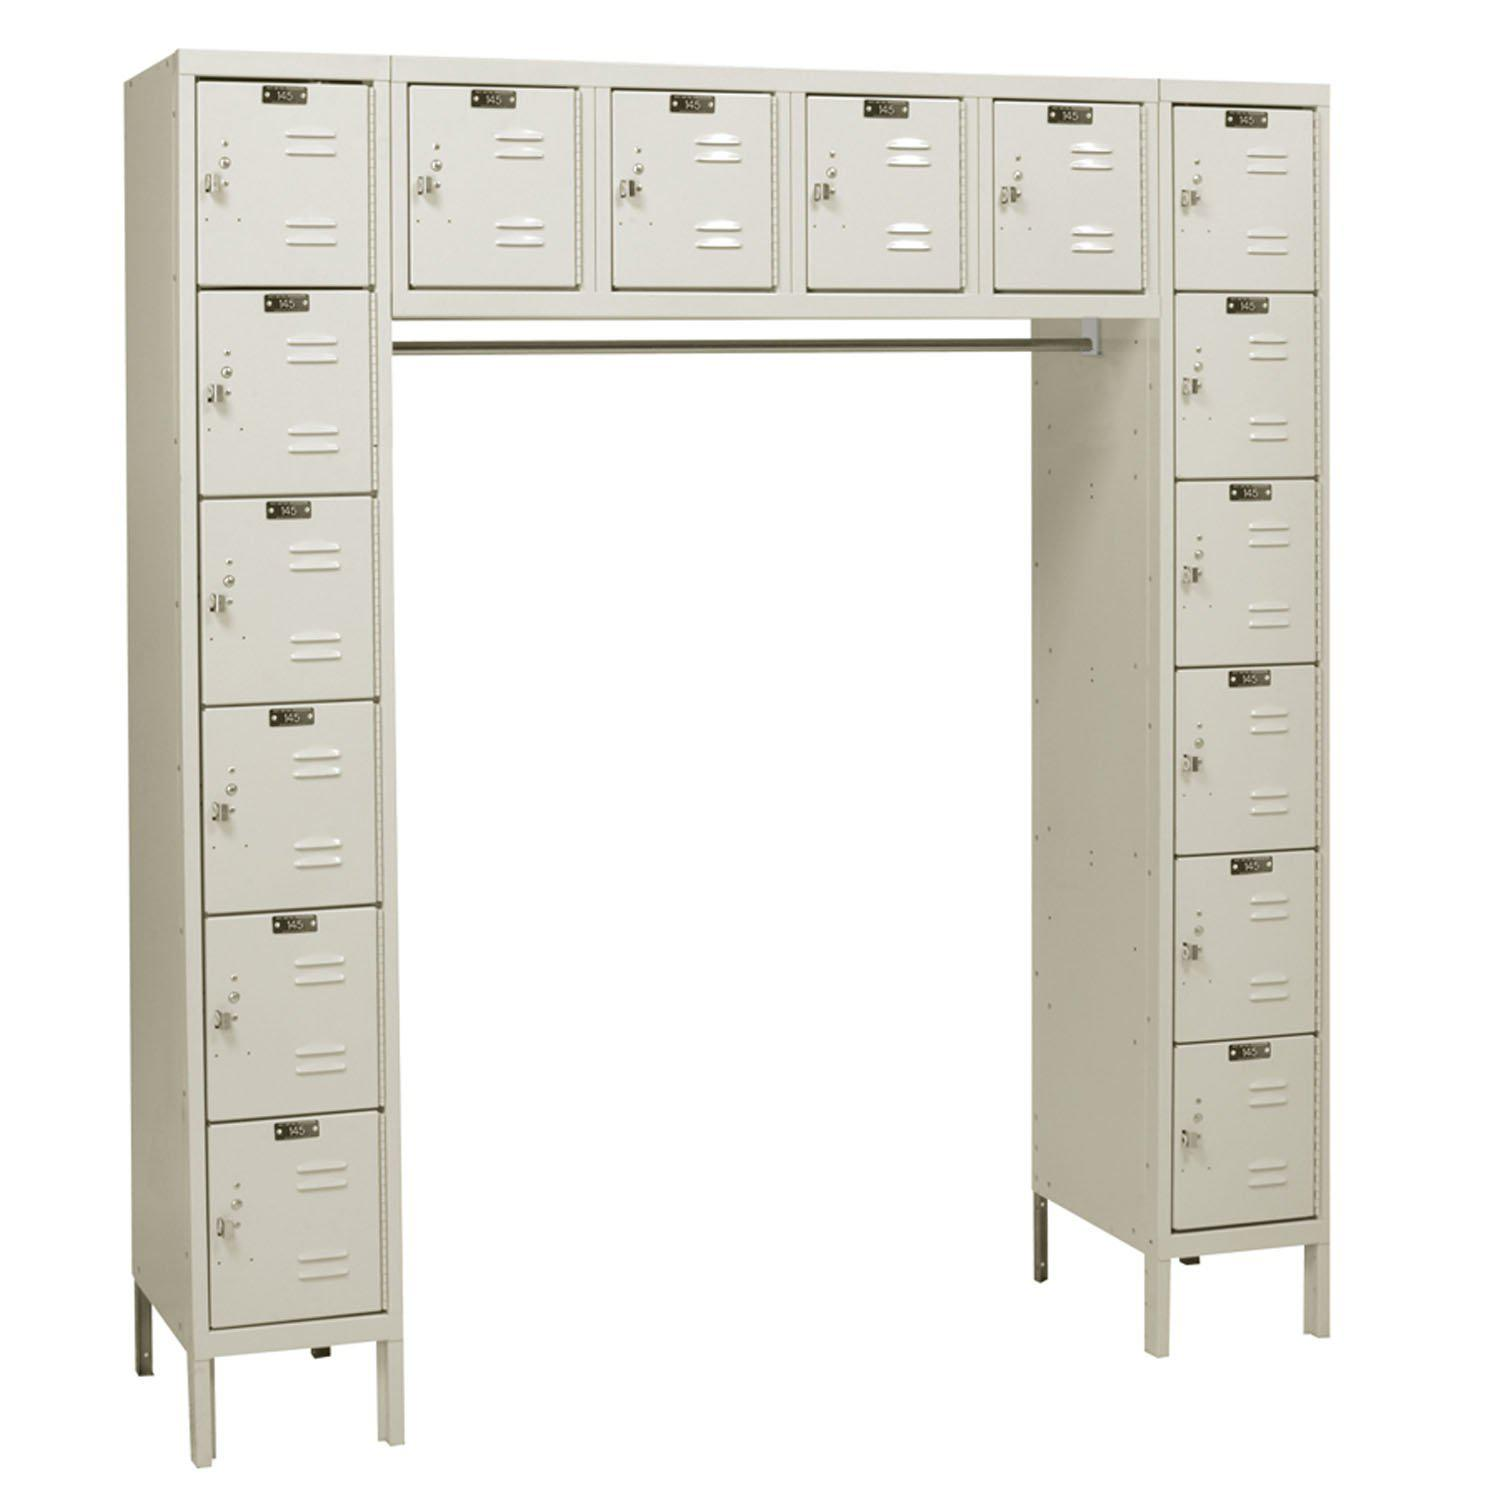 Hallowell Premium 16-Person Lockers